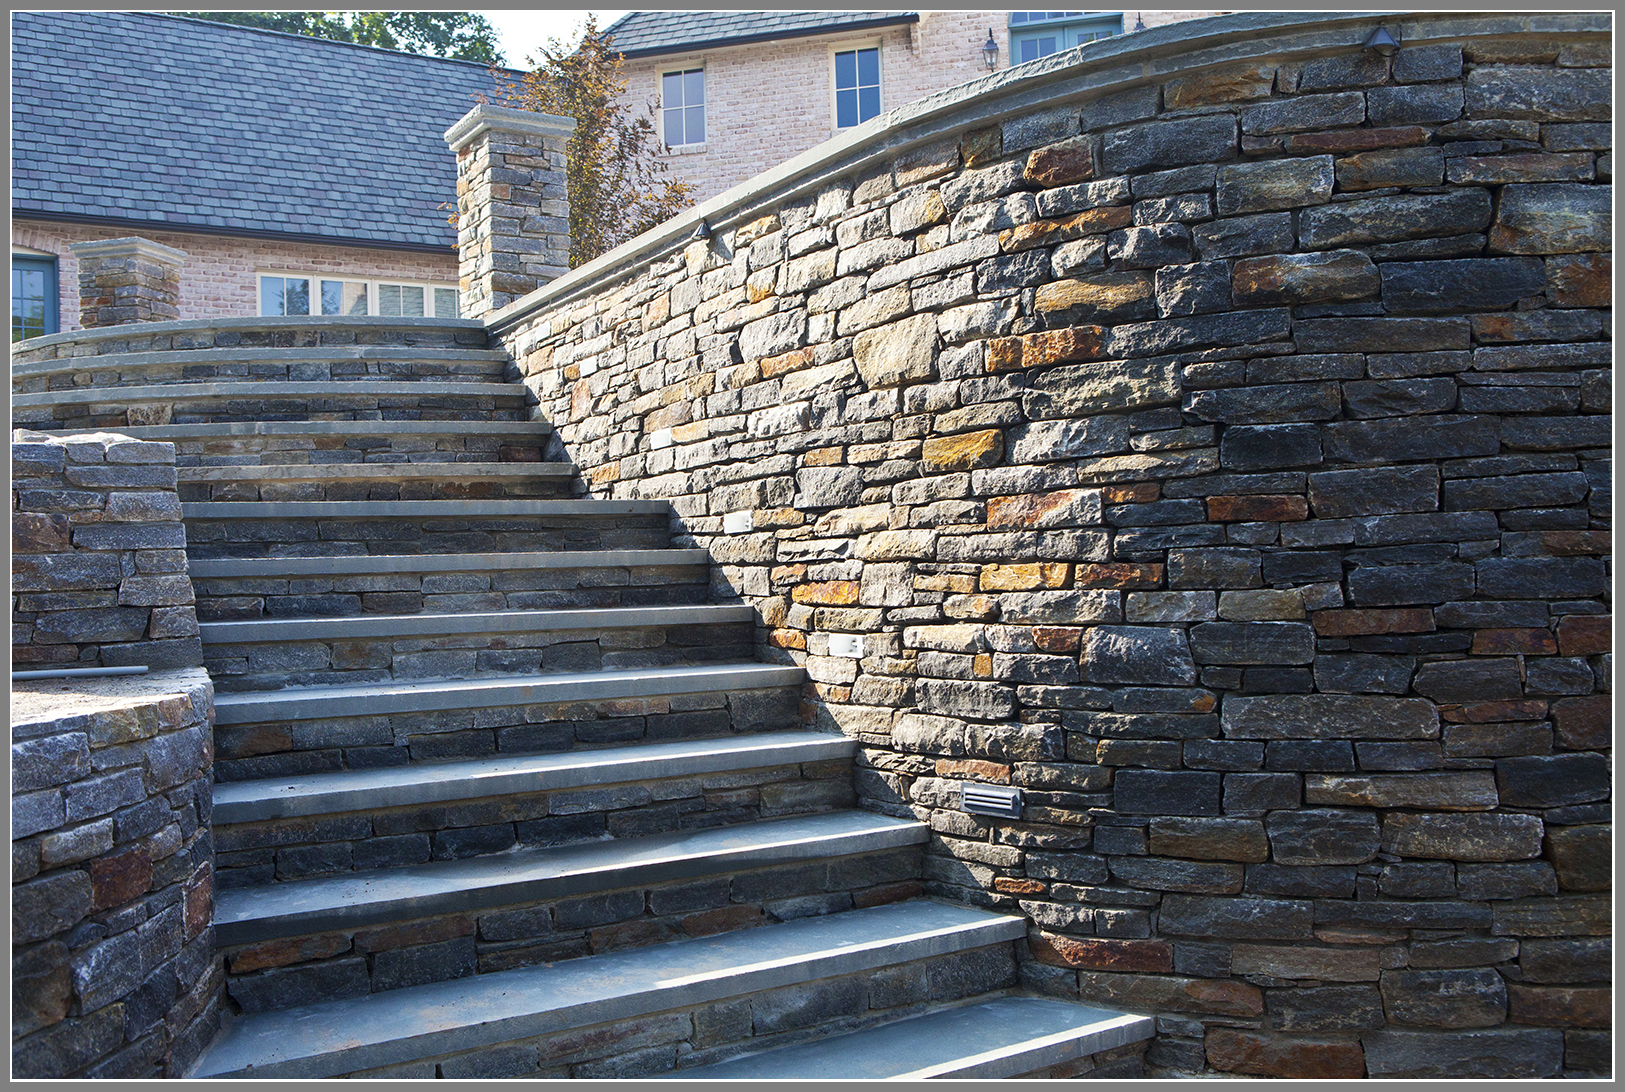 Stone wall and steps with bluestone cap